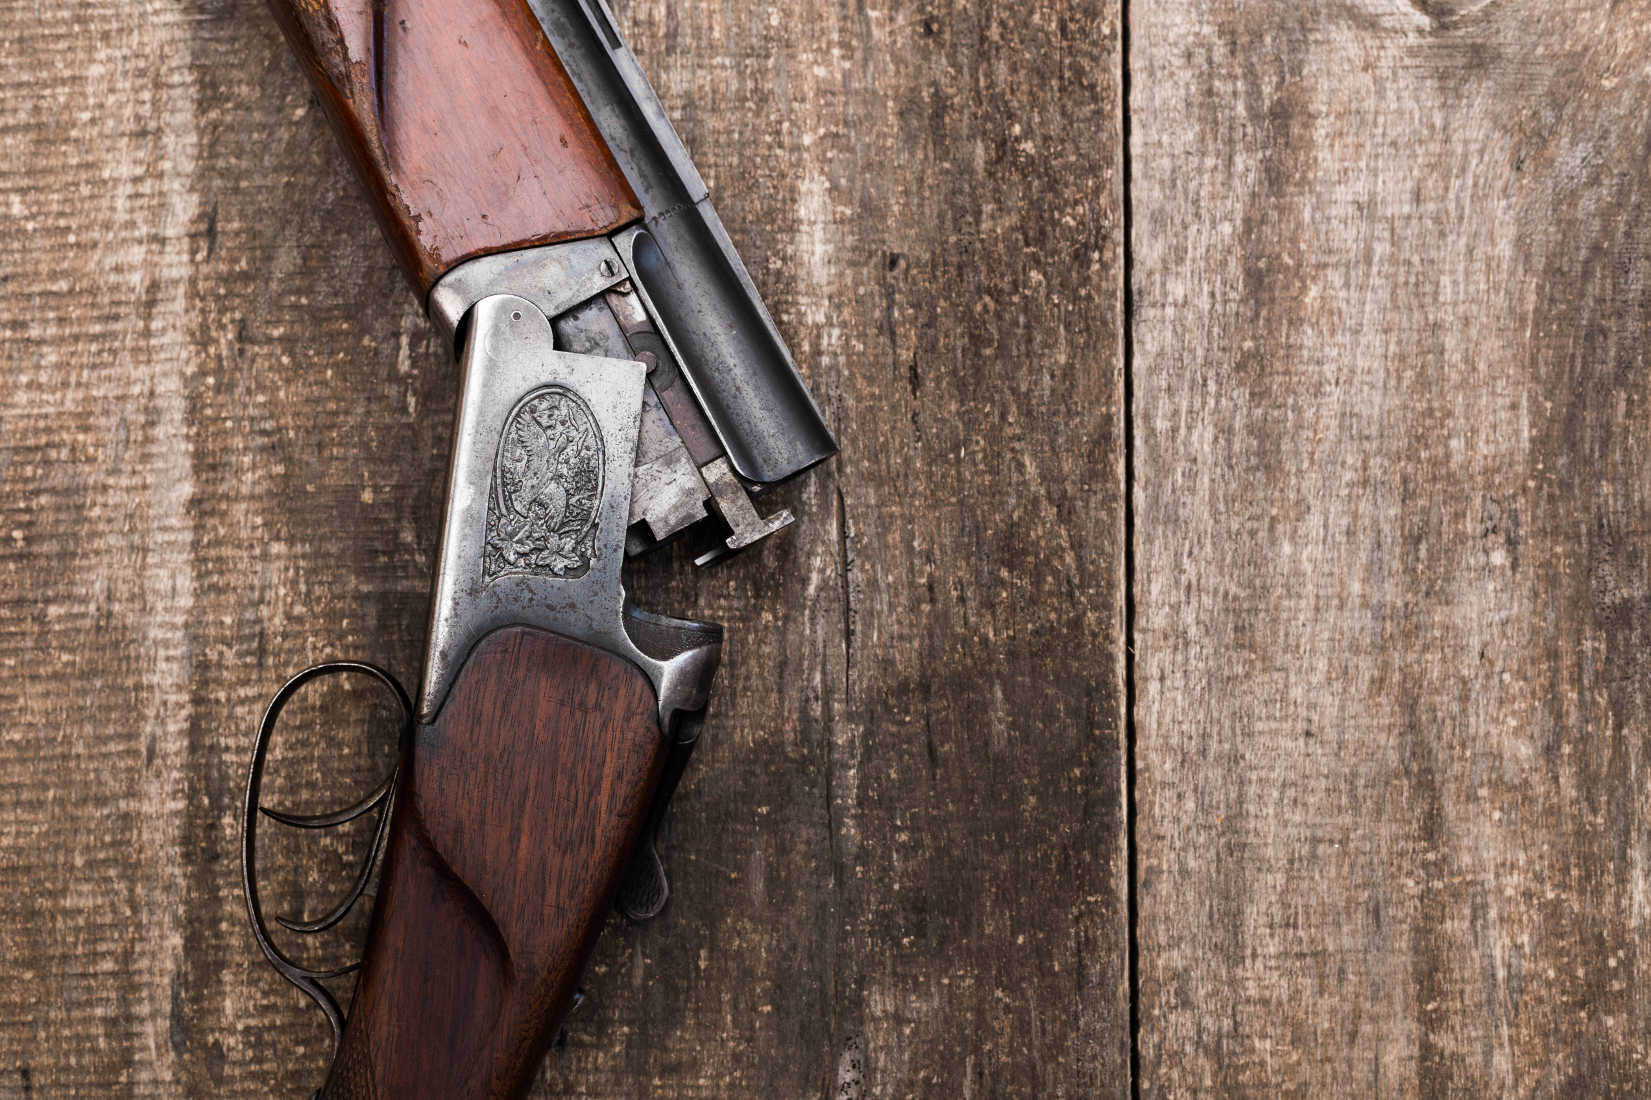 Sporting Clays in America: Growing and Evolving